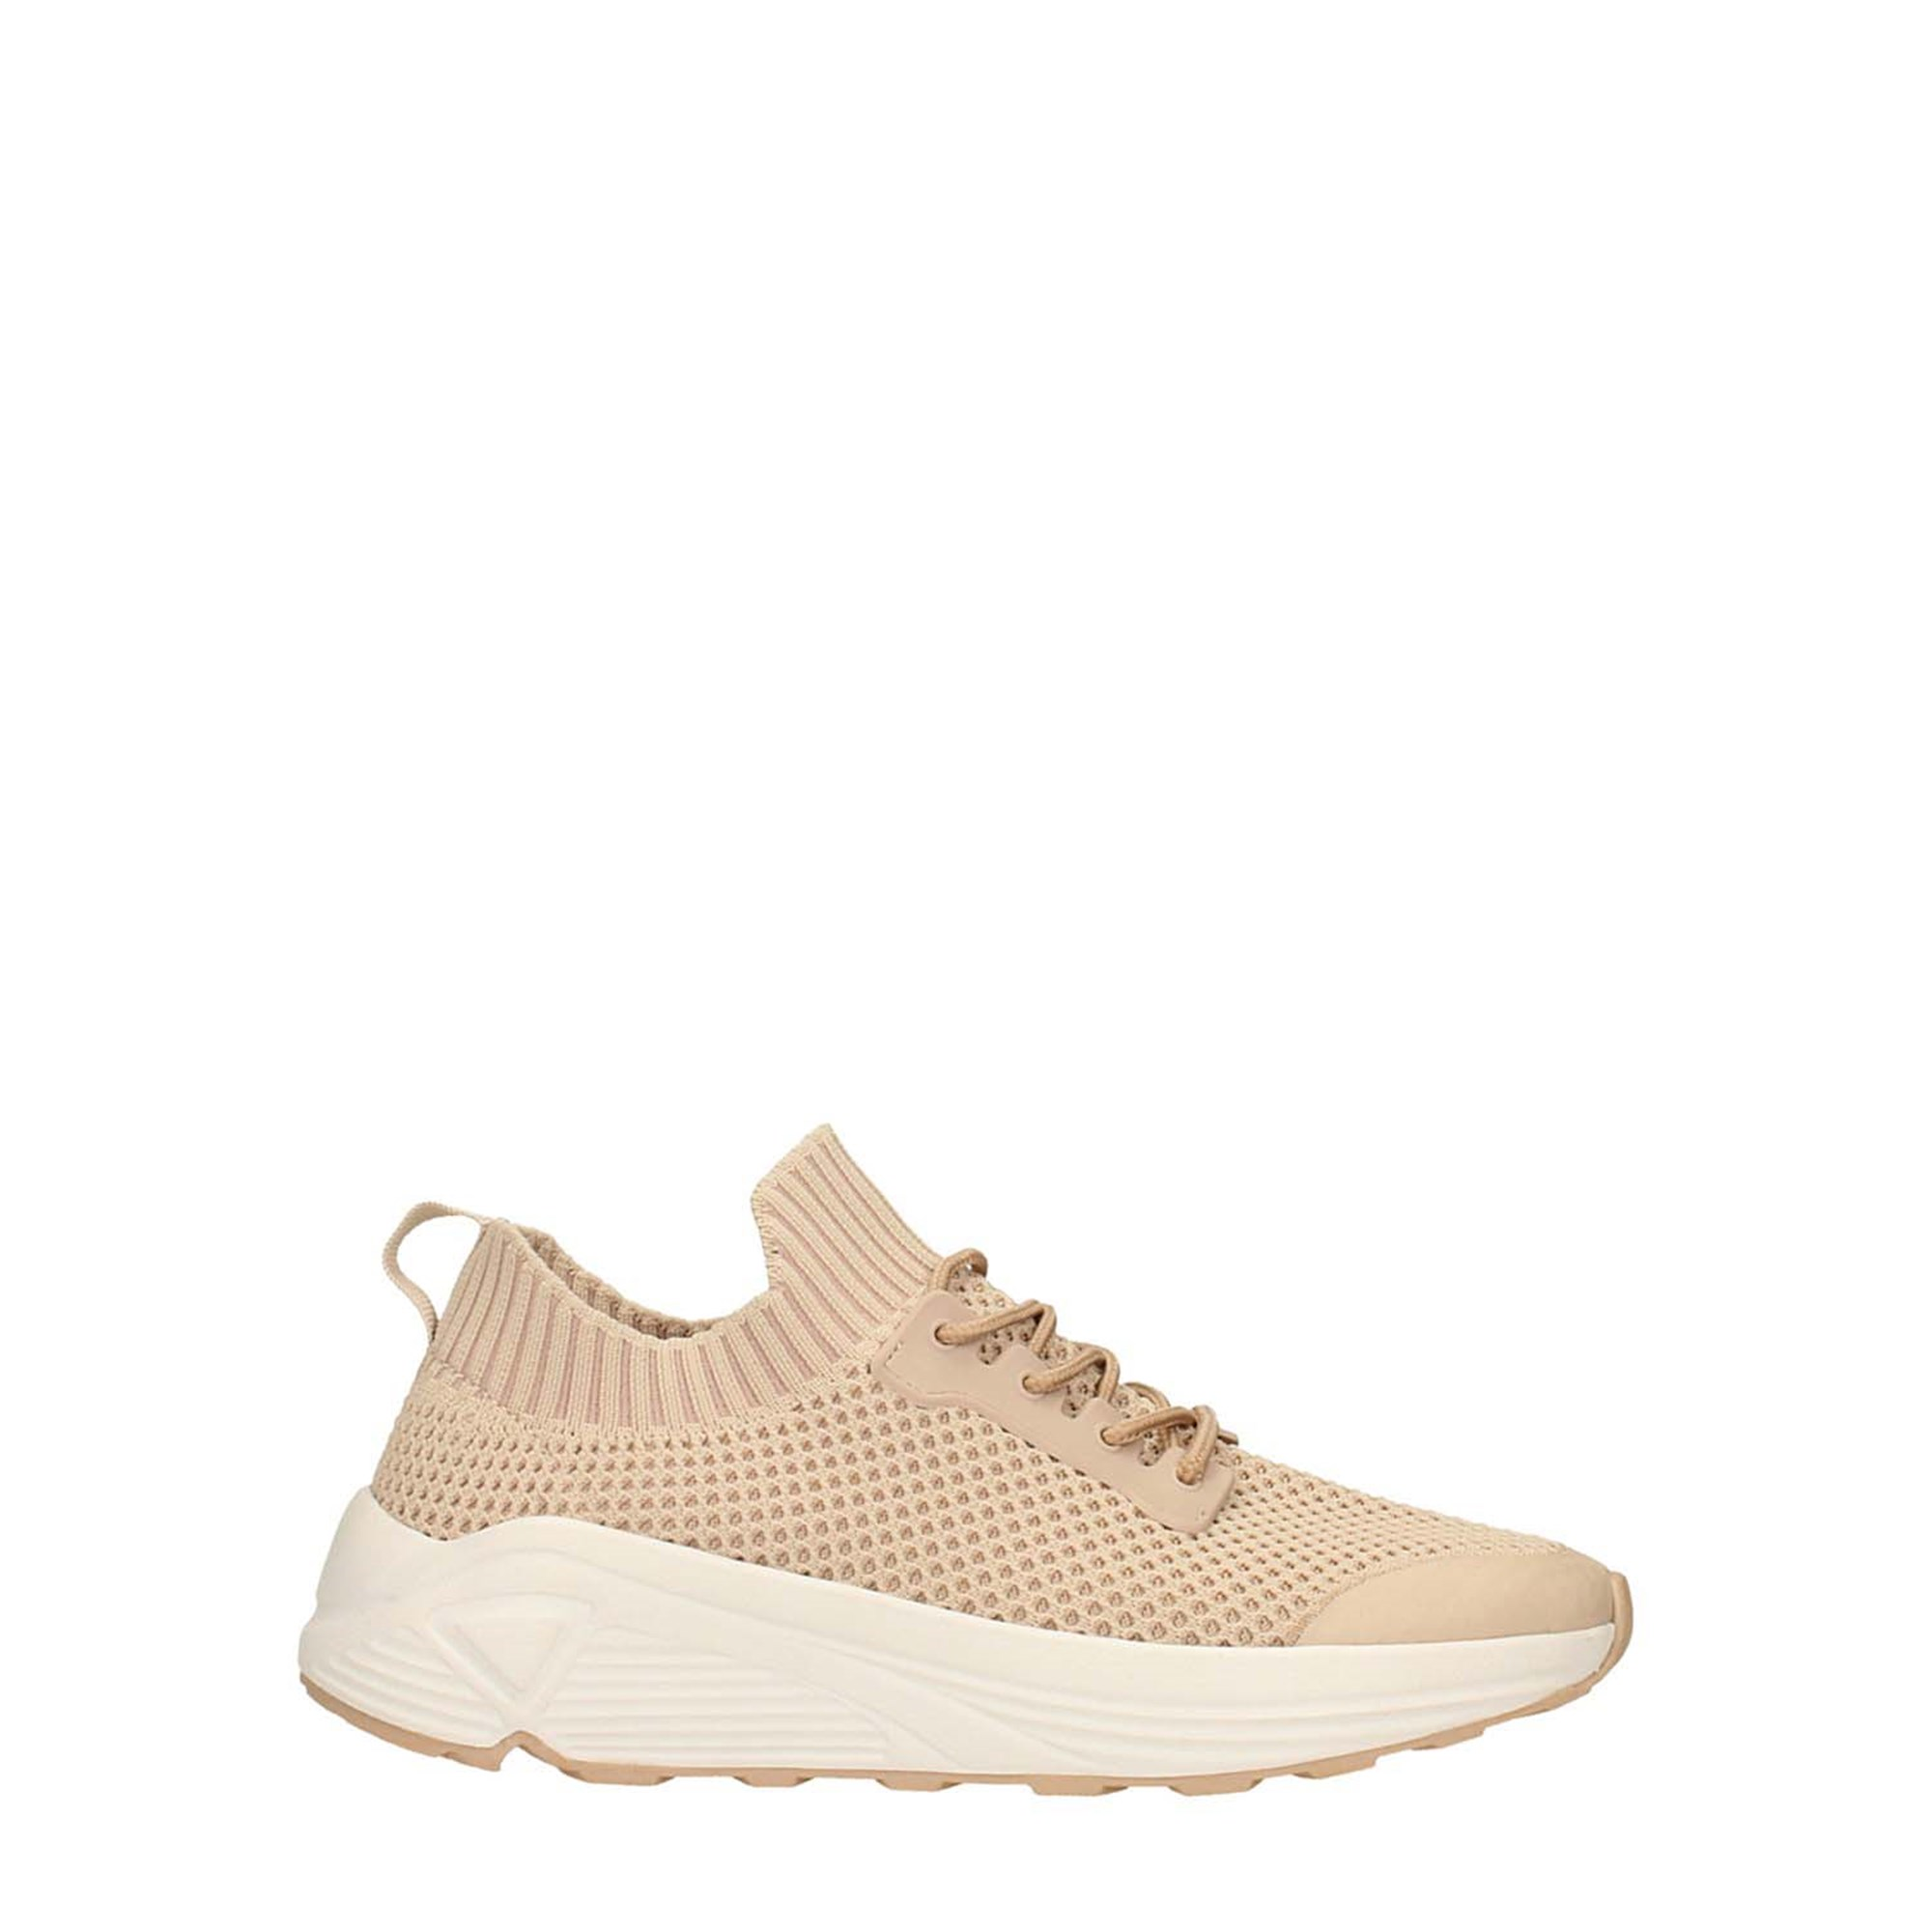 Tata Italia Shoes Woman Sneakers 1904701